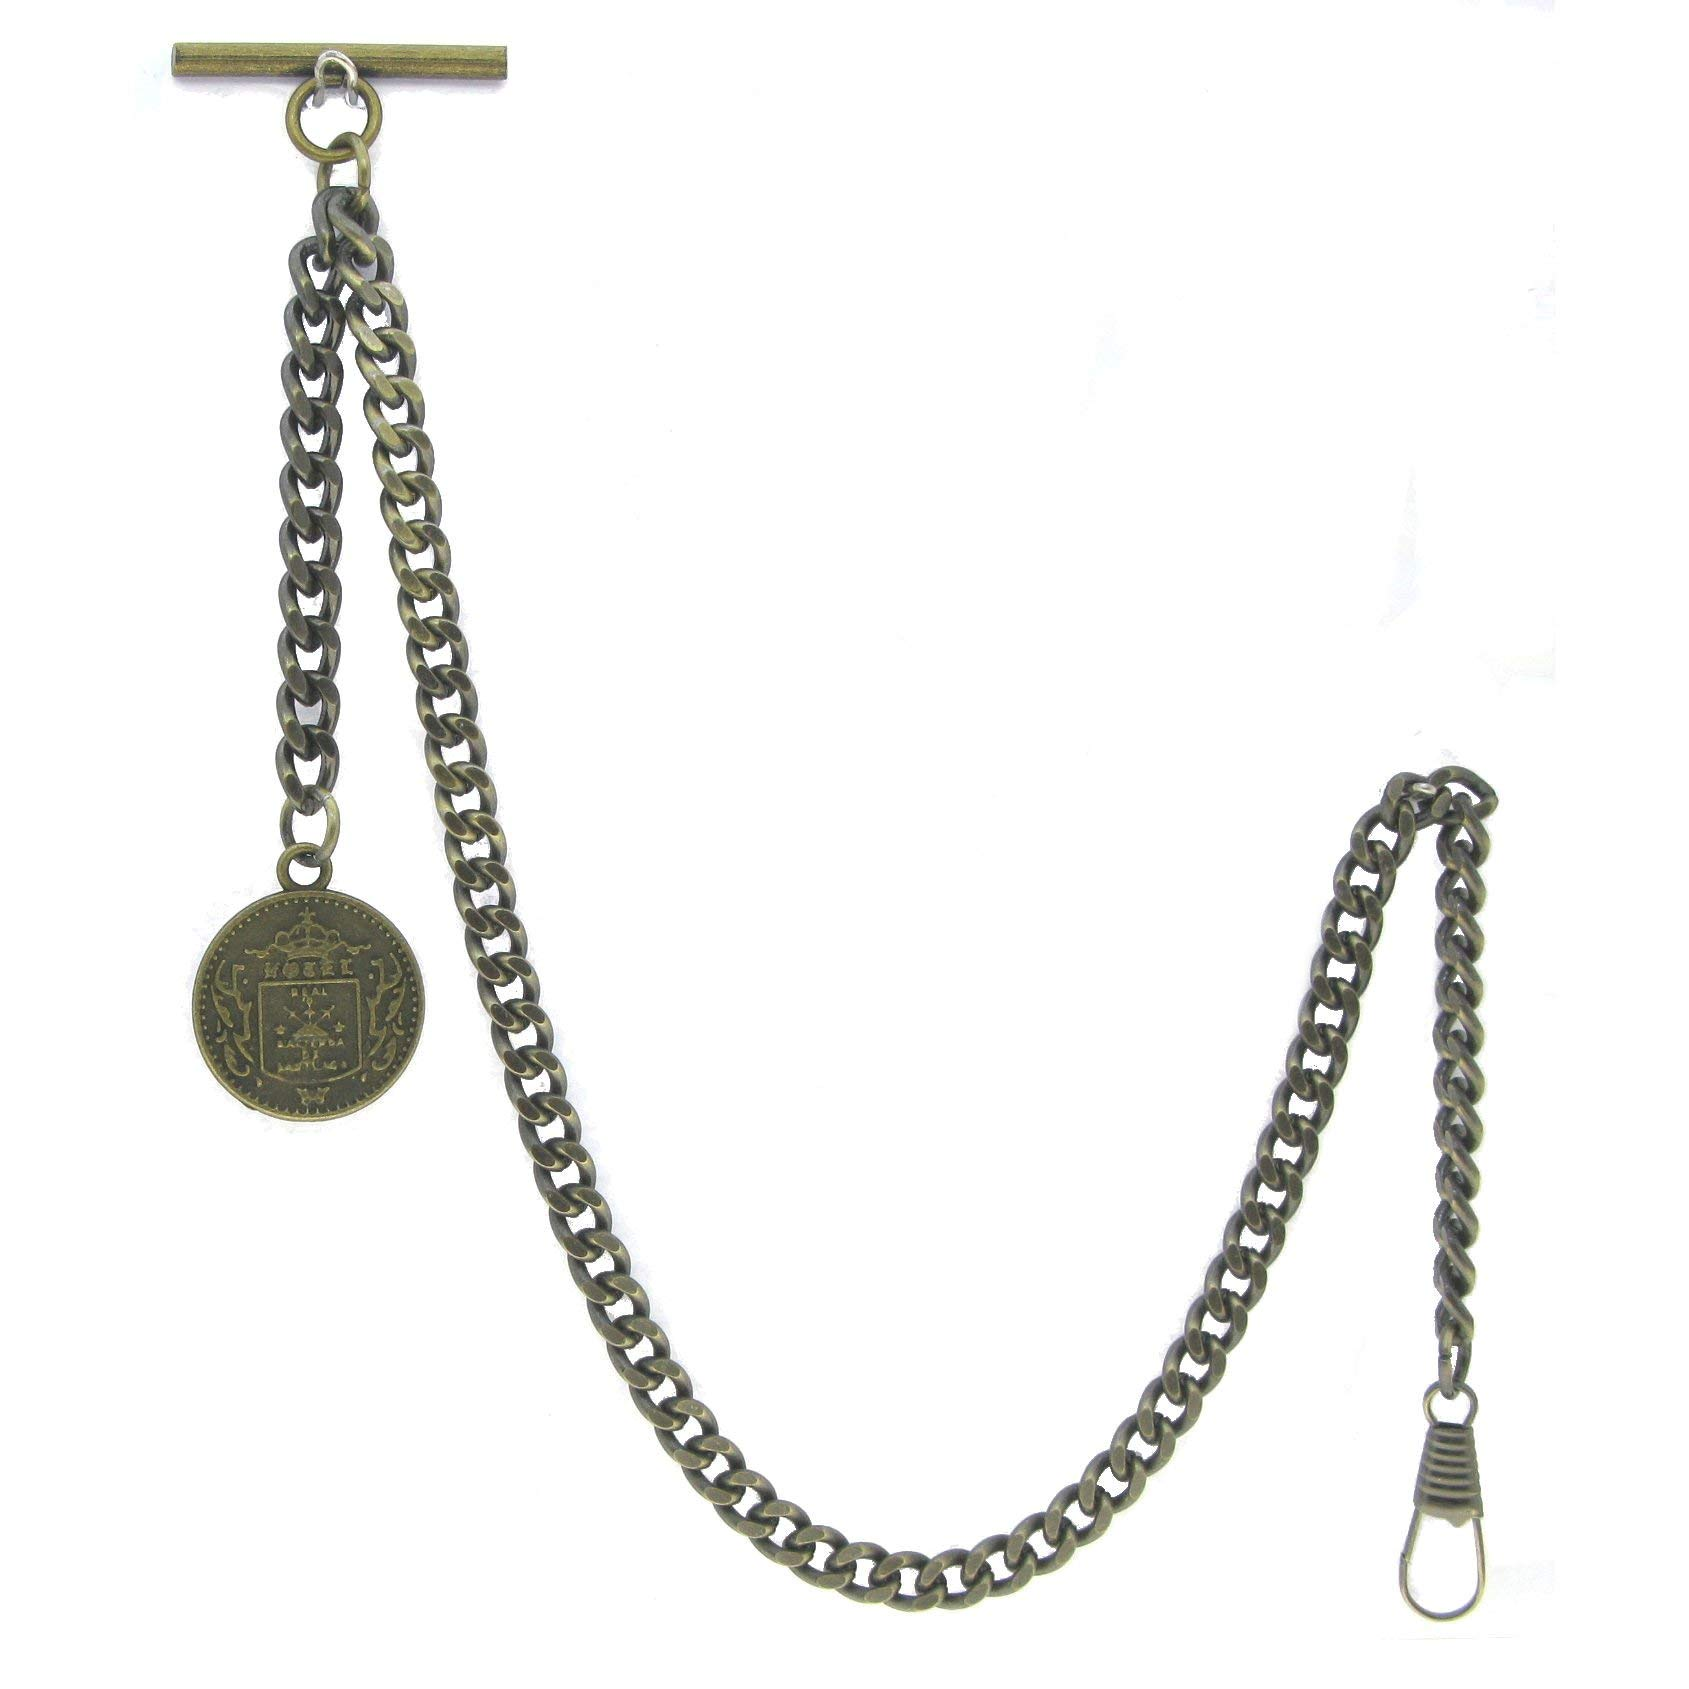 Albert Chain Pocket Watch Curb Link Chain Antique Brass Color Old Coin Design Fob T Bar AC94